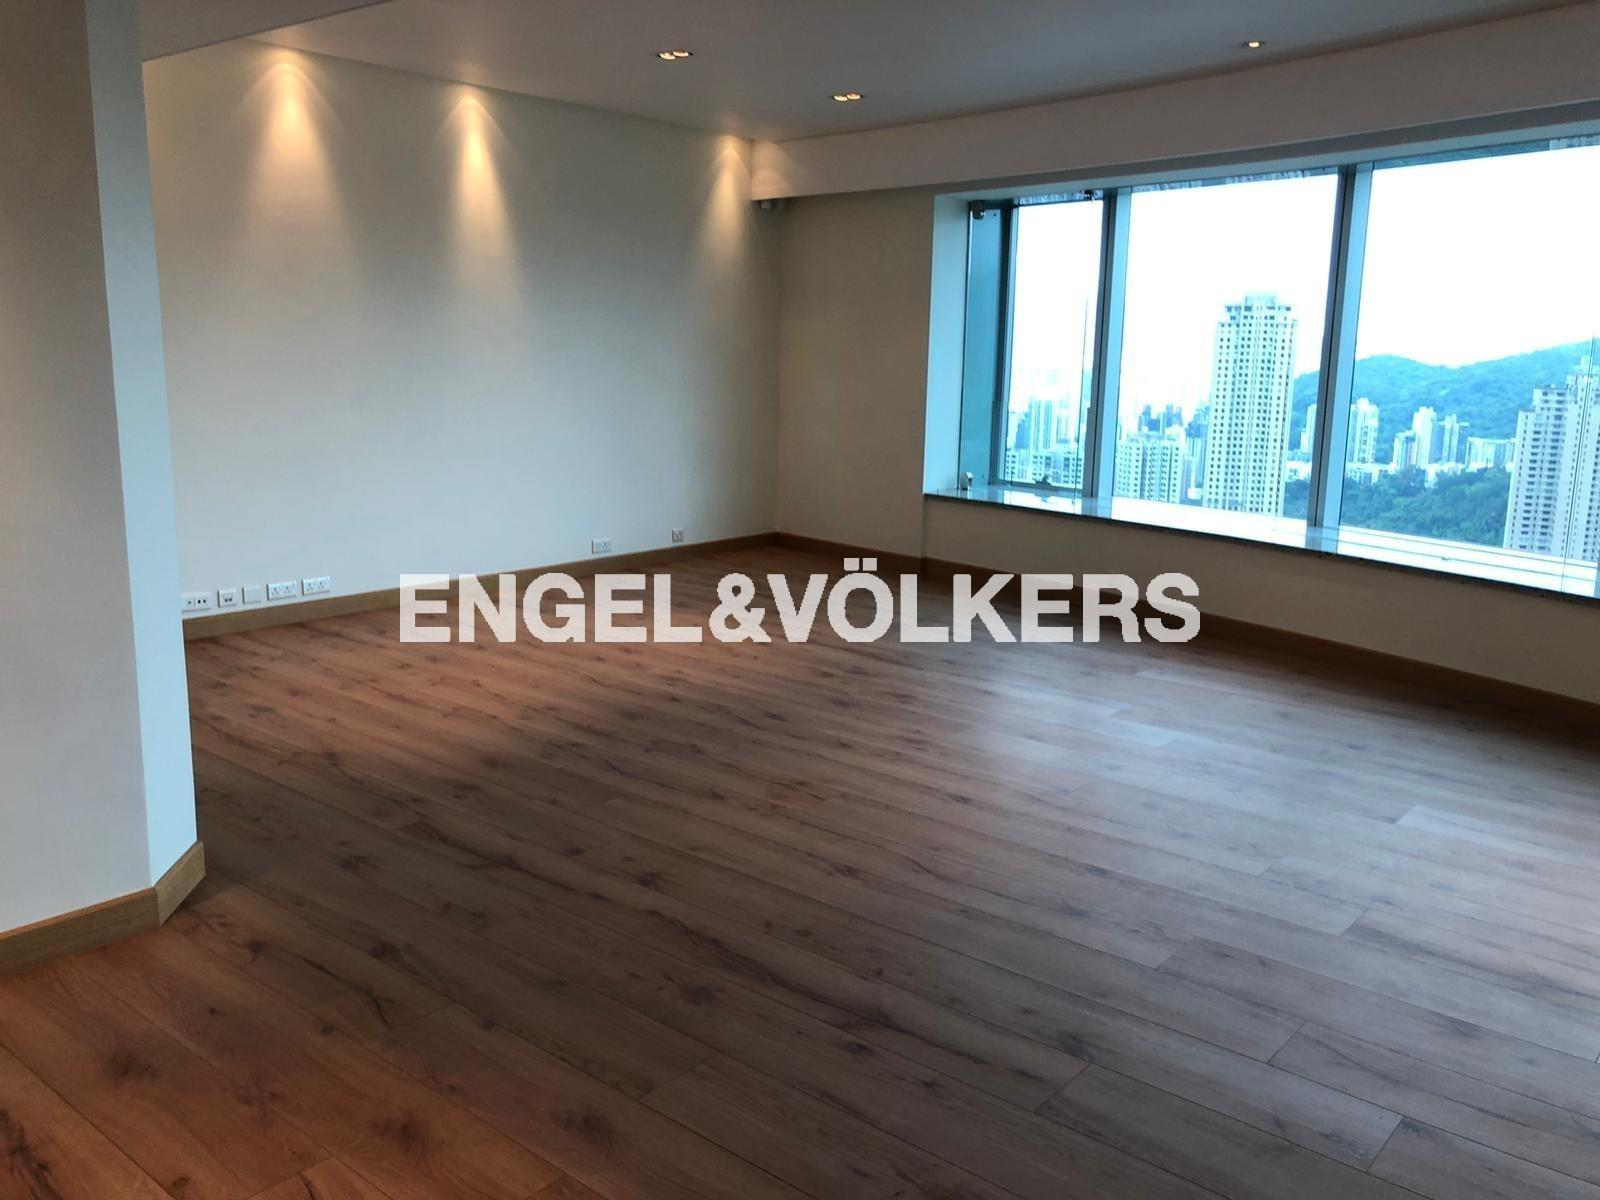 Apartment in Happy Valley/Mid Level East - Highcliff 曉廬